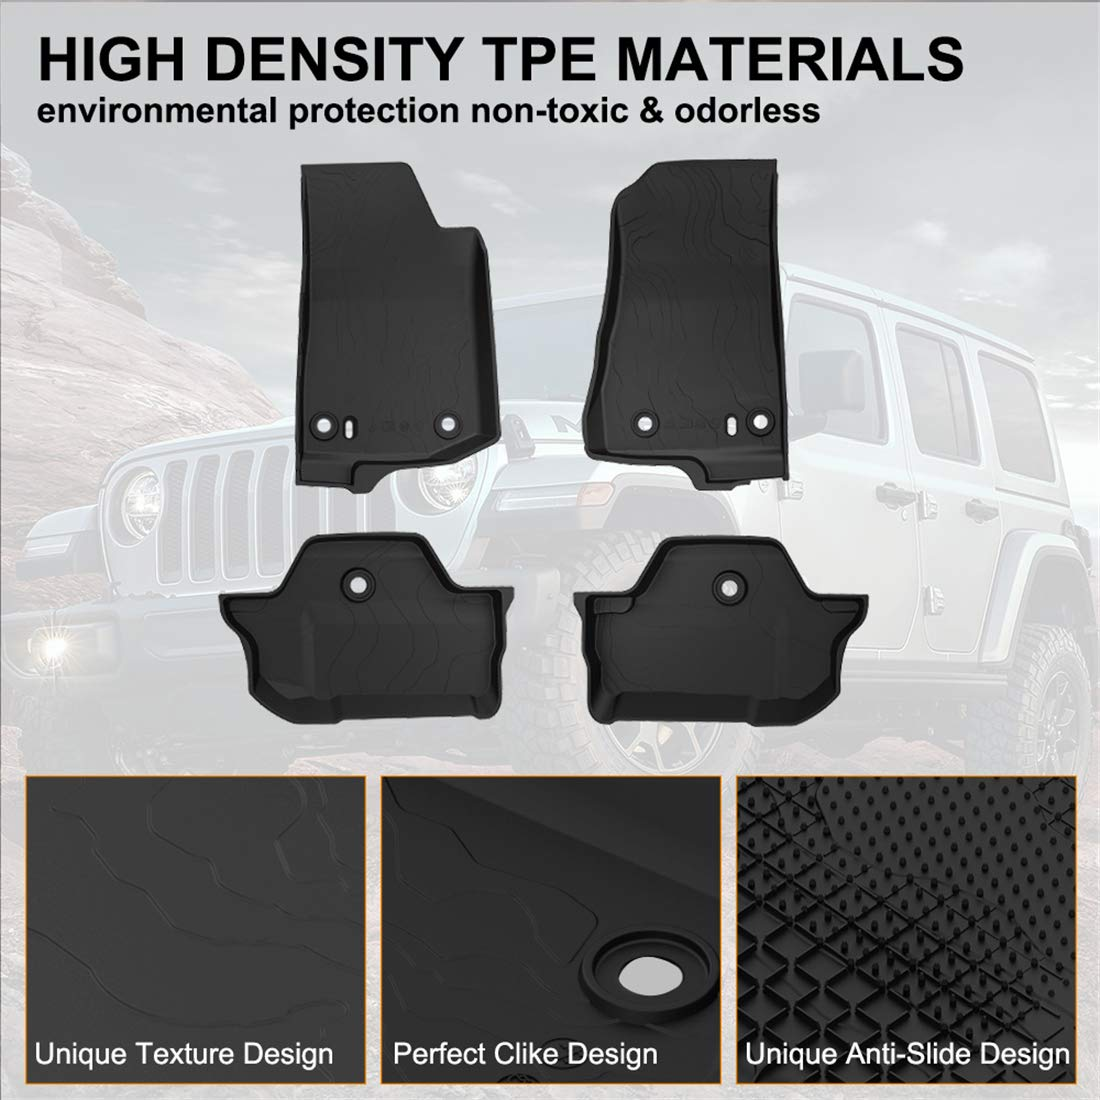 KIWI MASTER Floor Mats Compatible for Wrangler JL 2018 2019 New Jeep 4-Door OEM Floor Liners TPE All Weather Protector Slush Mat Front and Rear Row Black